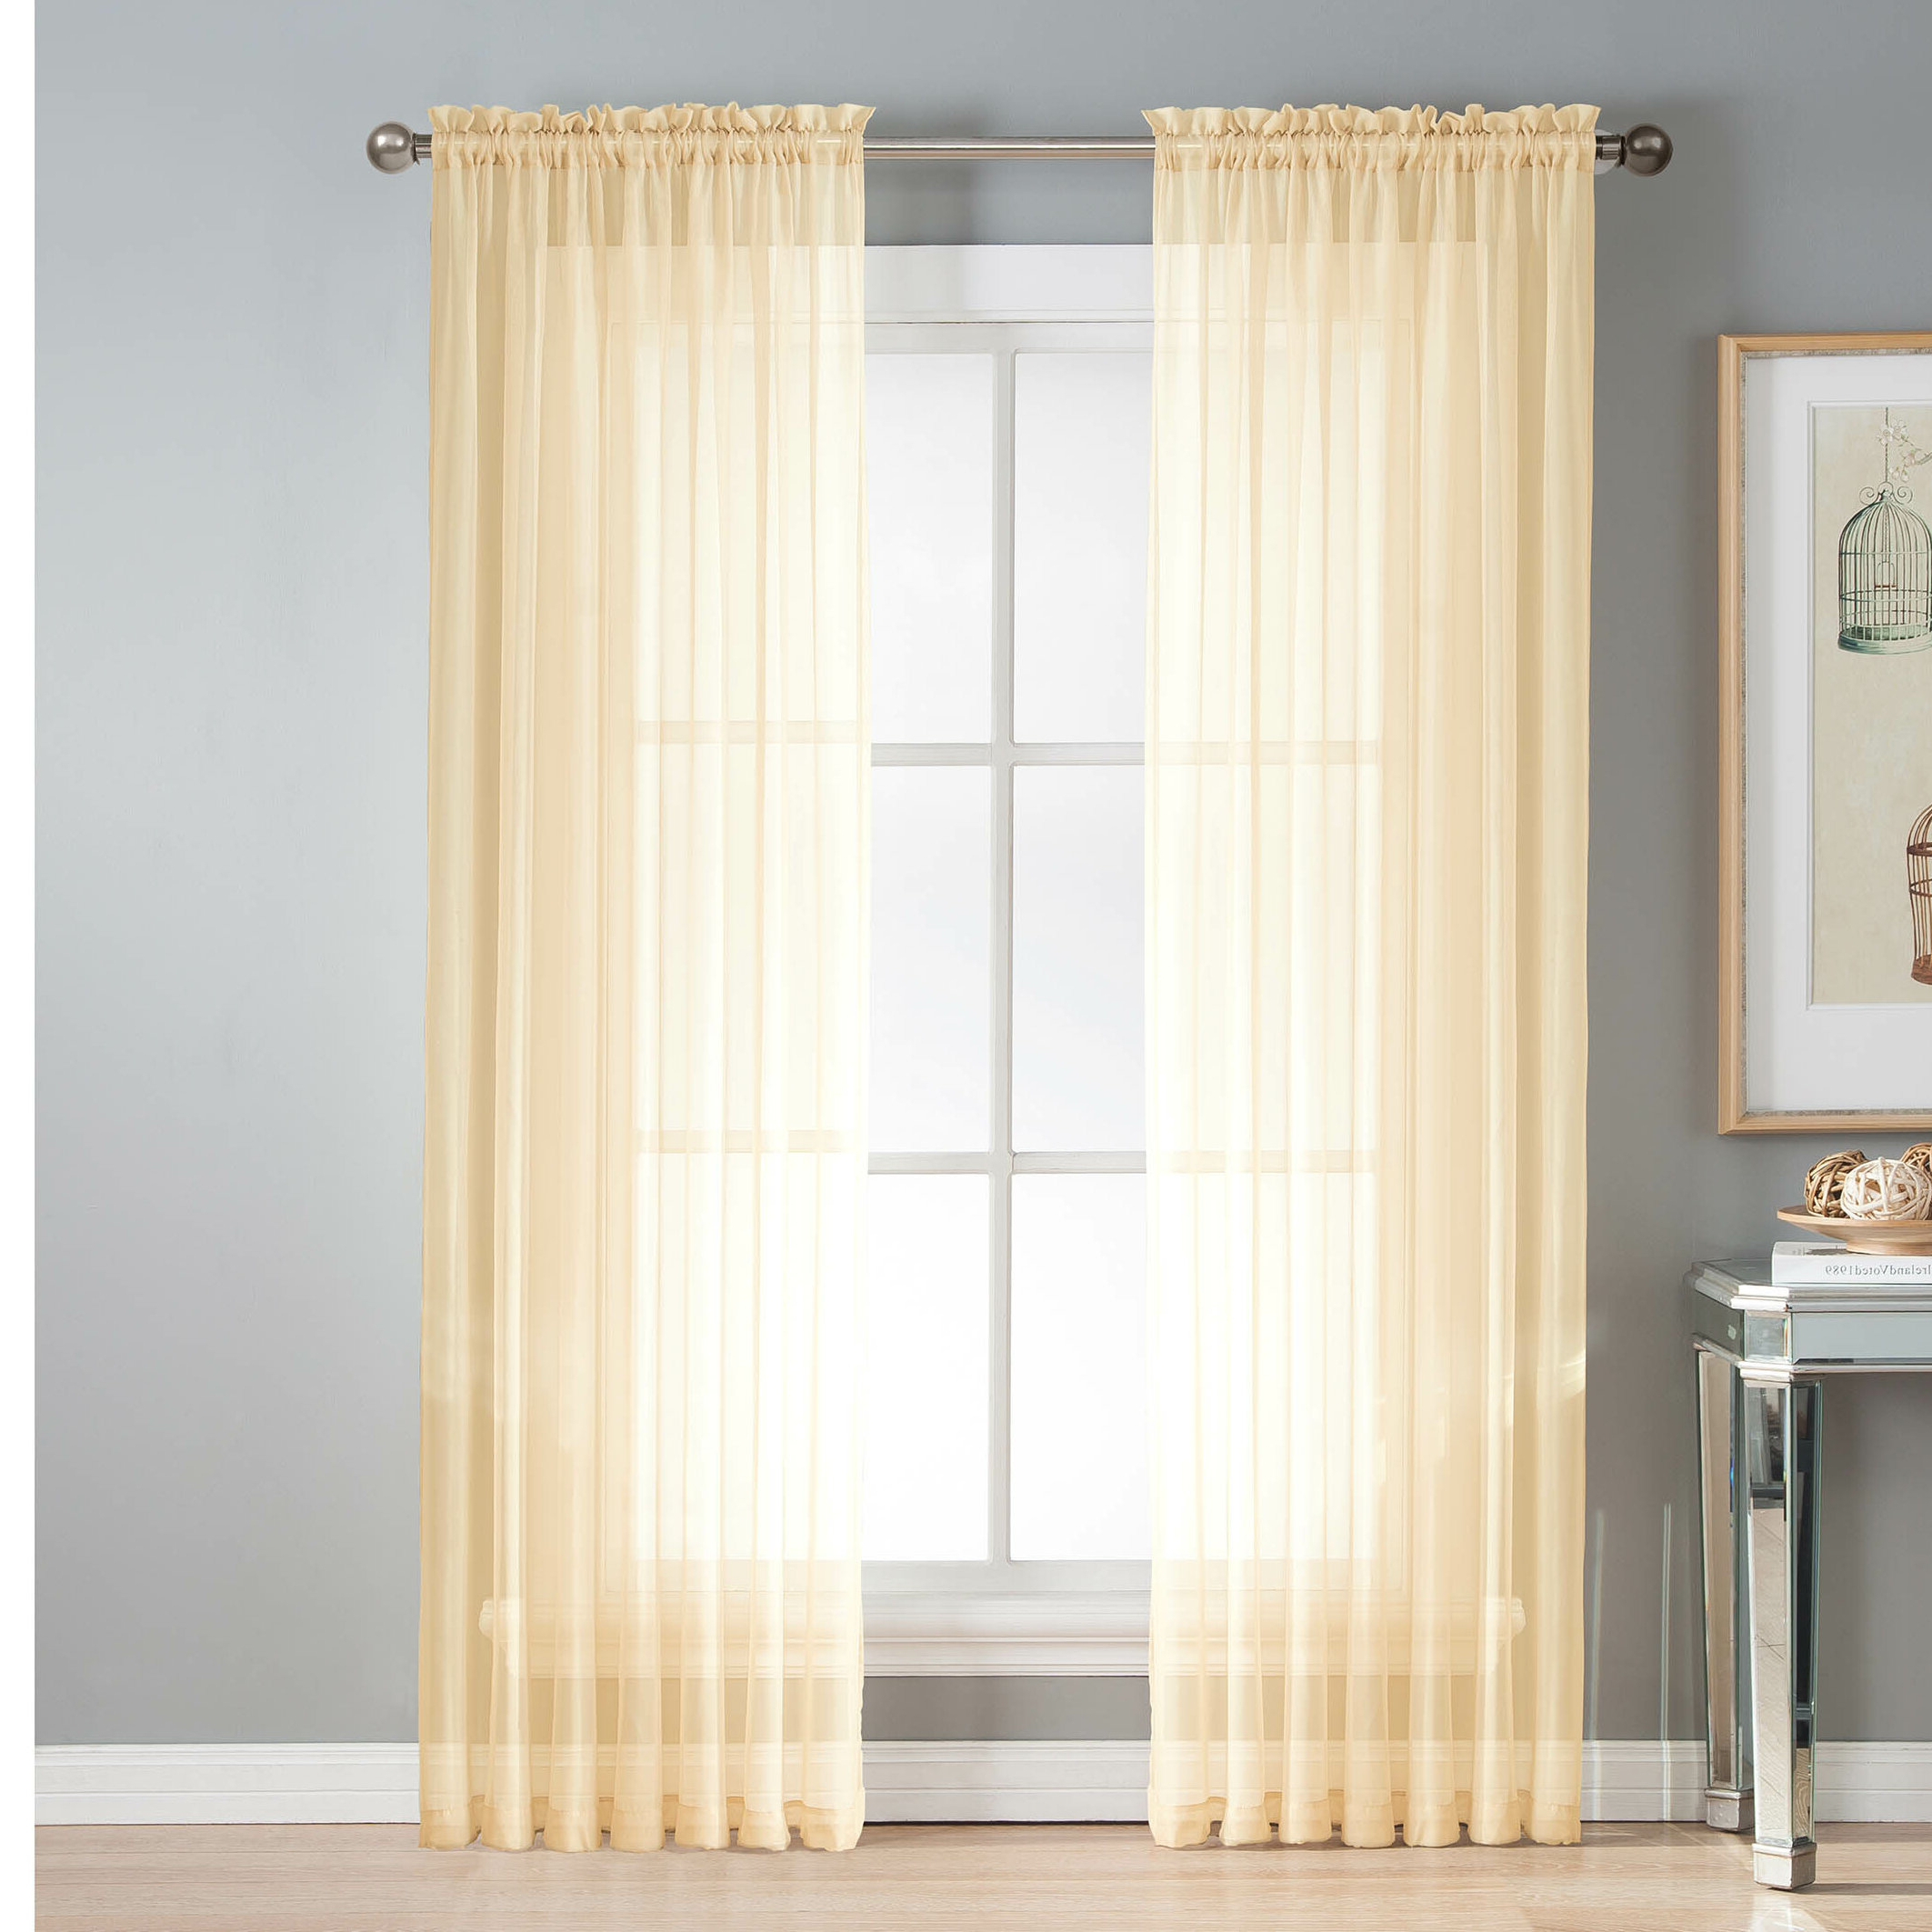 Fashionable Emily Sheer Voile Solid Single Patio Door Curtain Panels With Regard To Mcgoldrick Solid Sheer Rod Pocket Curtain Panels (Gallery 18 of 20)